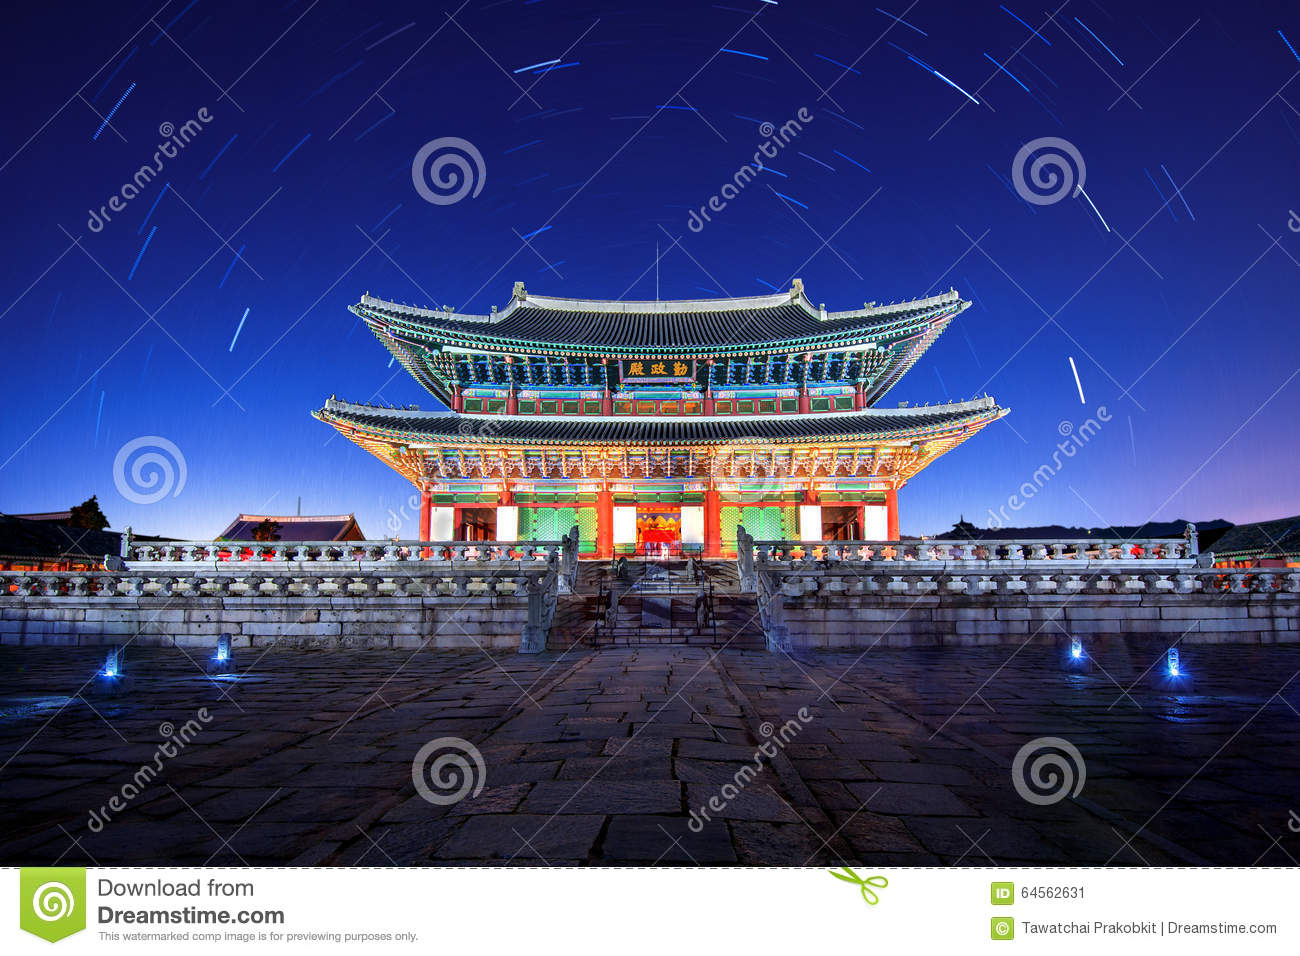 gyeongbokgung palace with star trails at night in korea stock image image of colorful fort. Black Bedroom Furniture Sets. Home Design Ideas